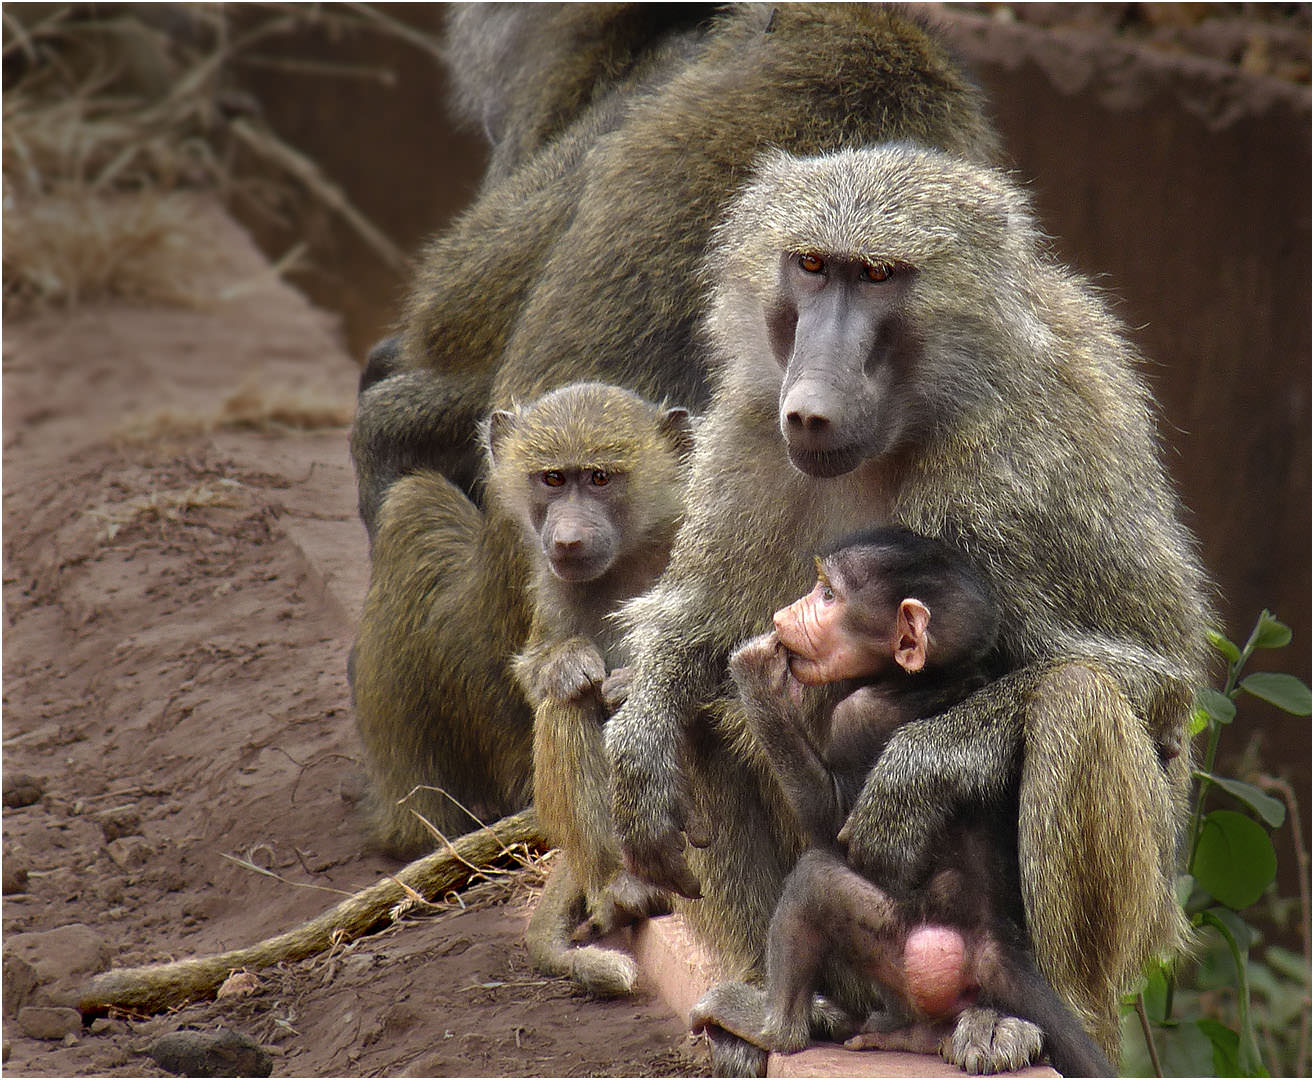 Baboon Family in Africa